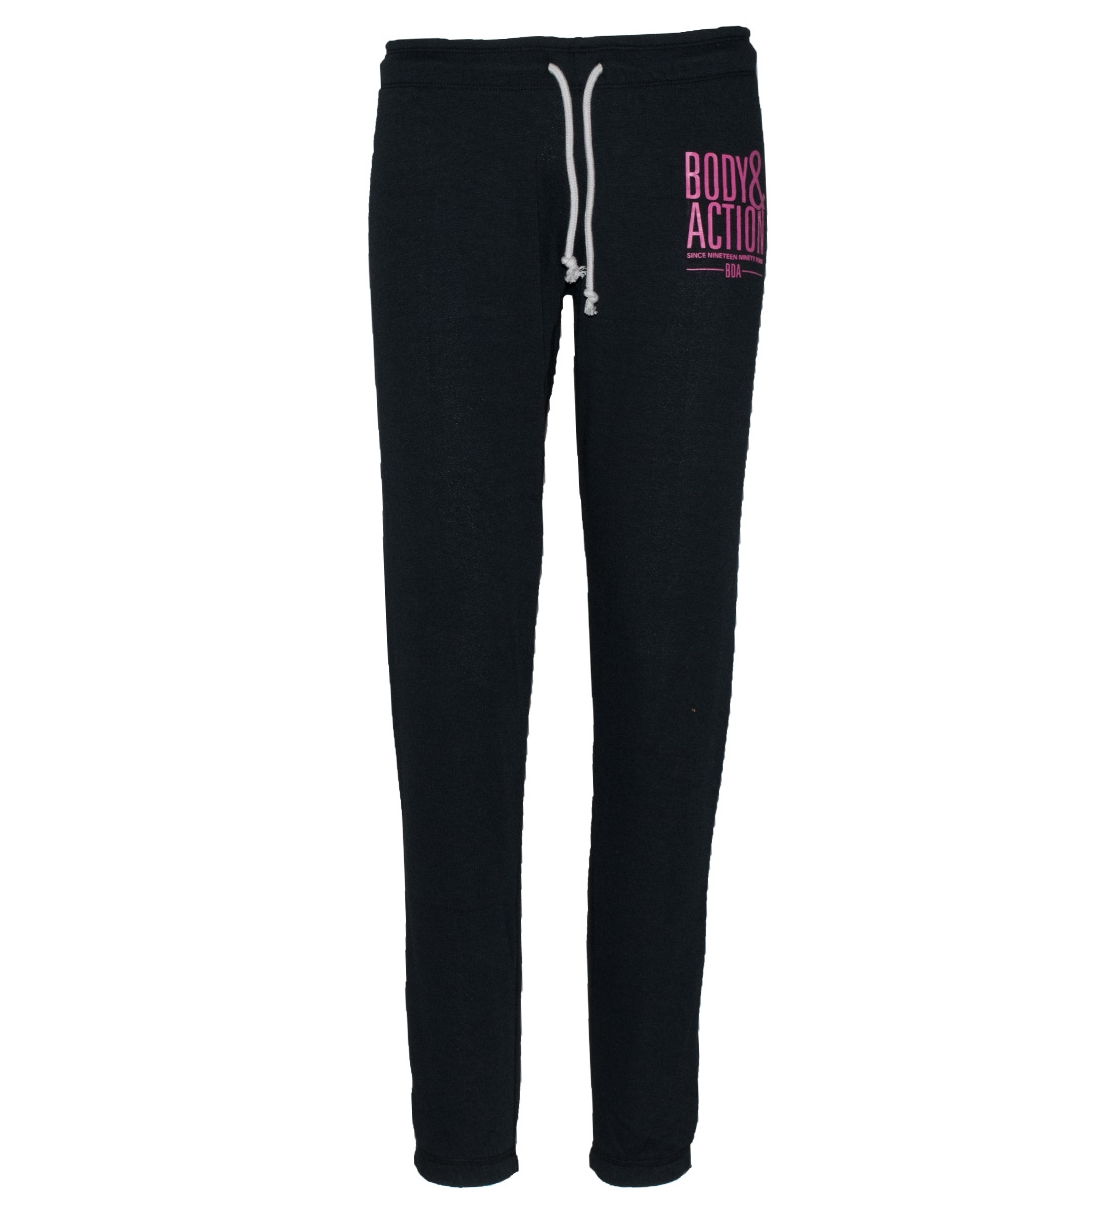 Body Action Γυναικείο Αθλητικό Παντελόνι Women Relaxed Fit Sweat Pants 021729